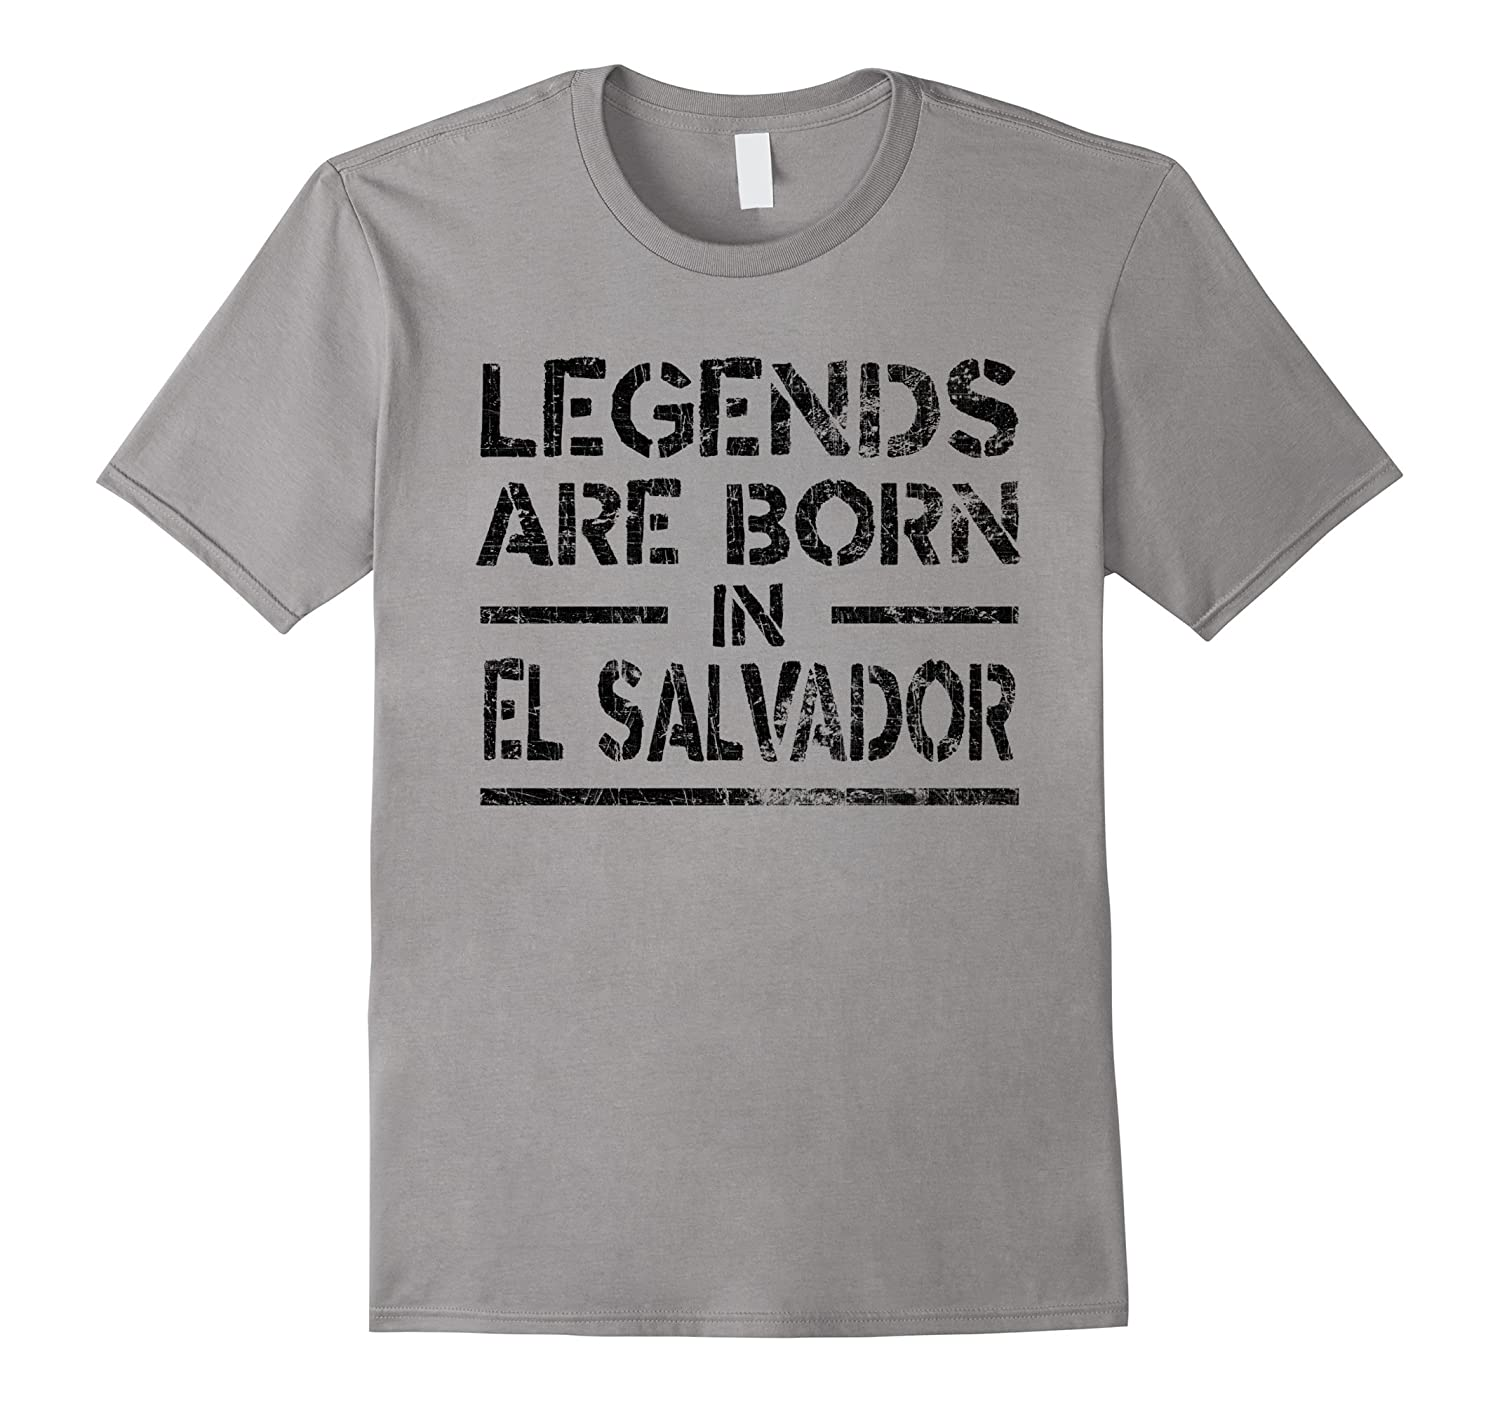 Legends Are Born In El Salvador T-Shirt Retro Distressed-Vaci